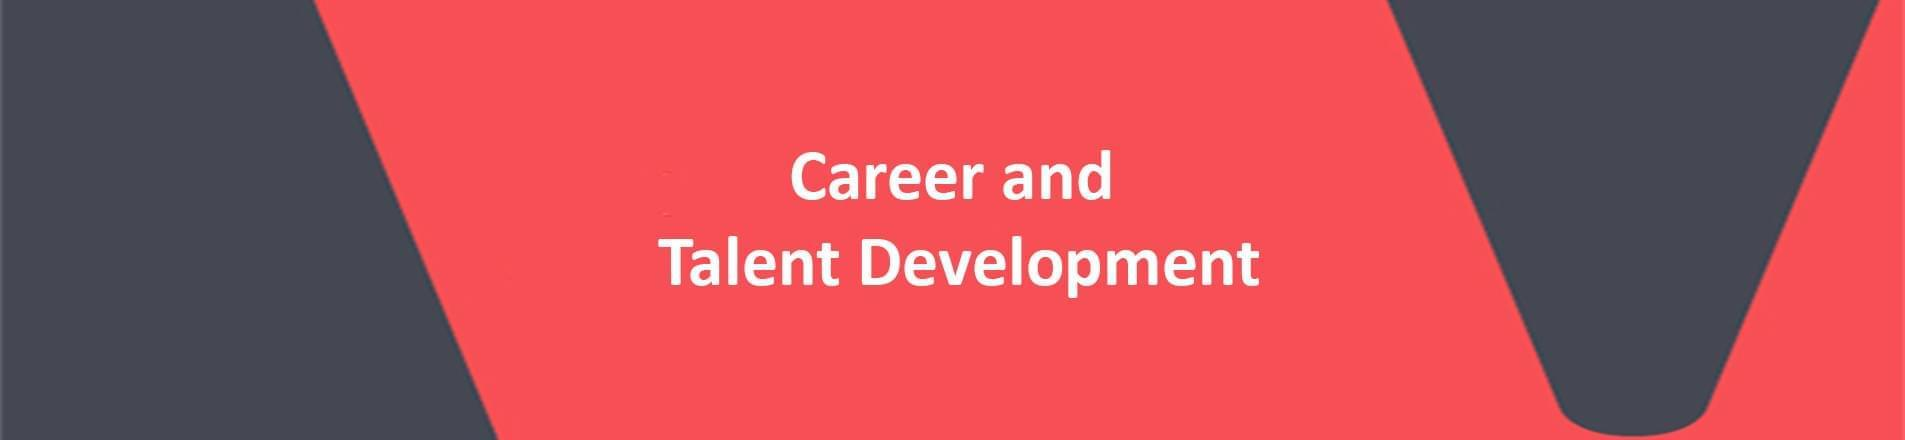 The words career and talent development